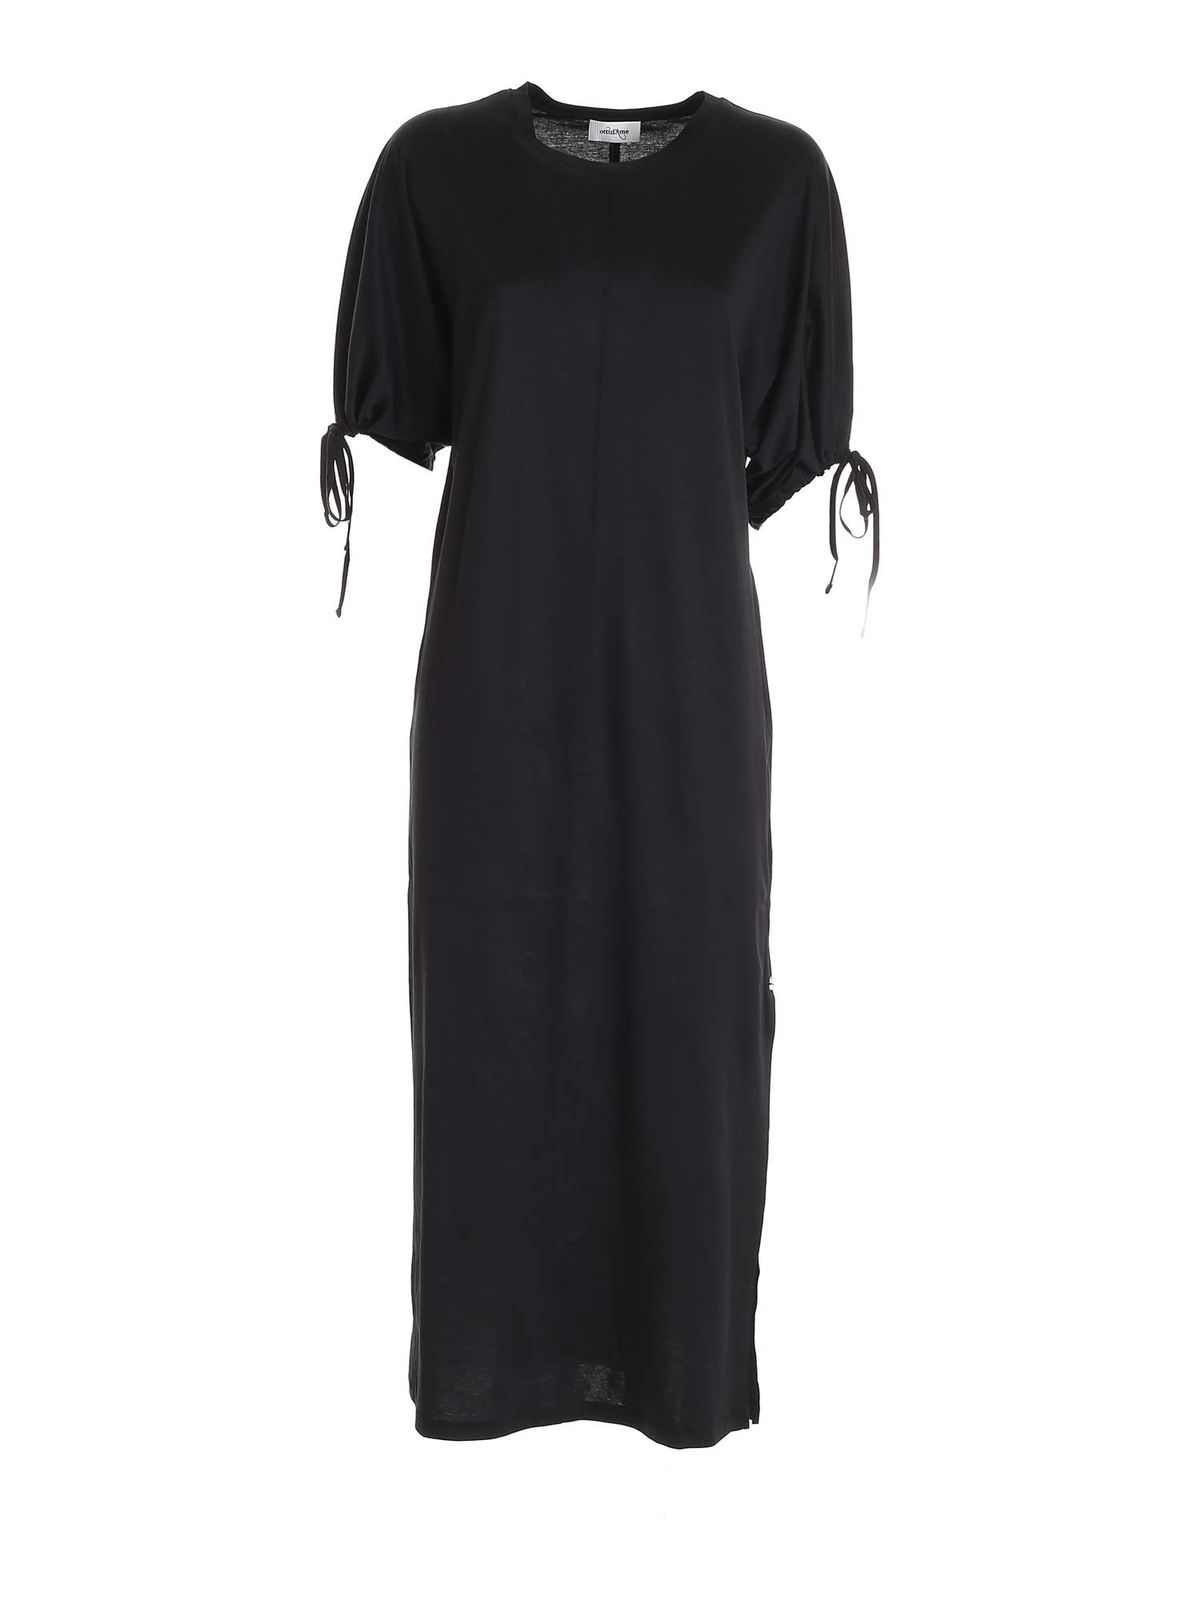 Ottod'ame LONG T-SHIRT DRESS IN BLACK